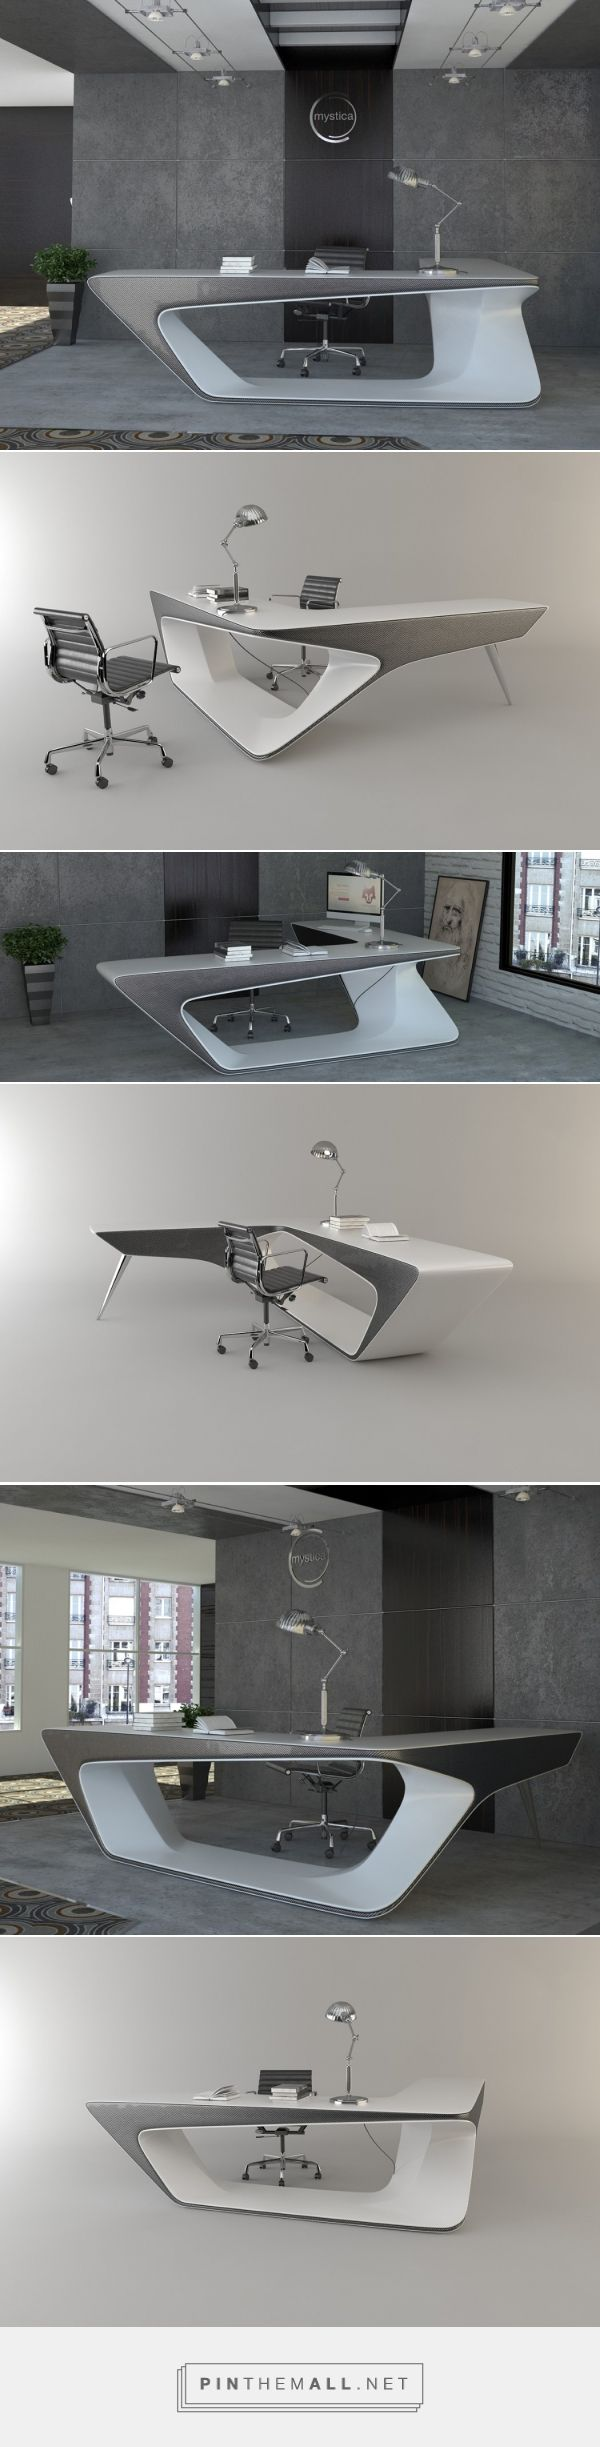 A workspace with grace | Yanko Design - created via http://pinthemall.net